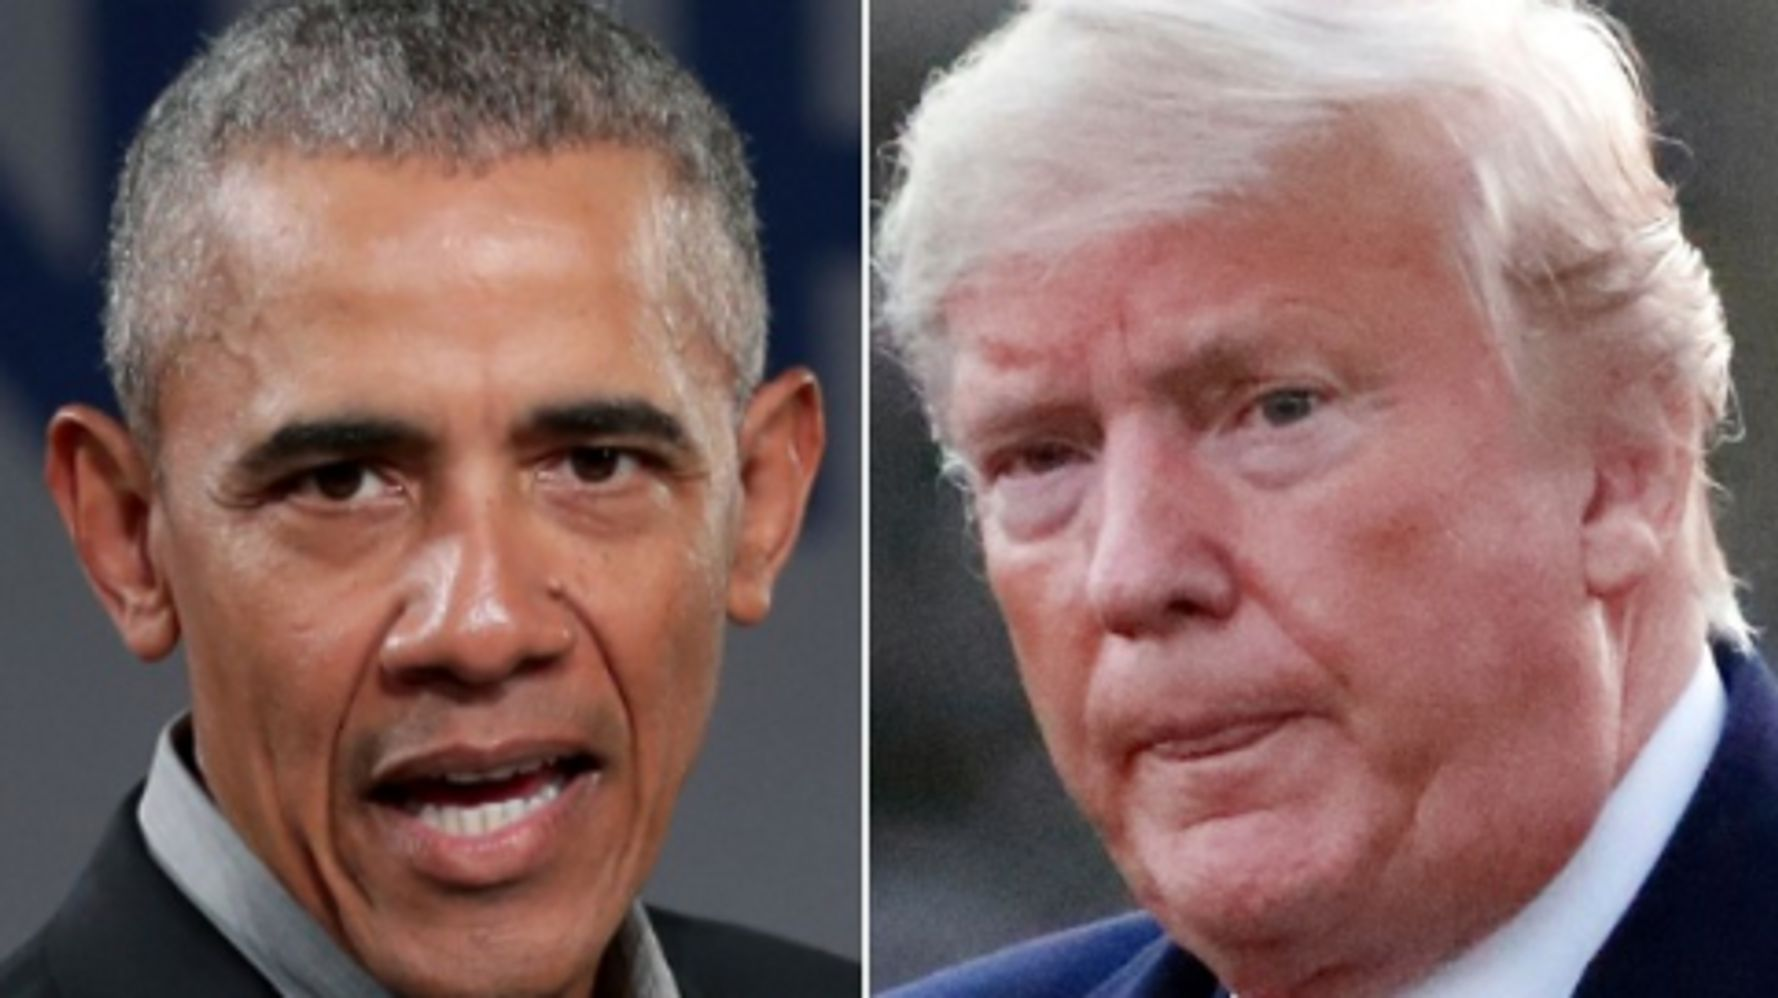 Trump's Old Tweet About Obama's Taxes Is Looking Super Awkward Now